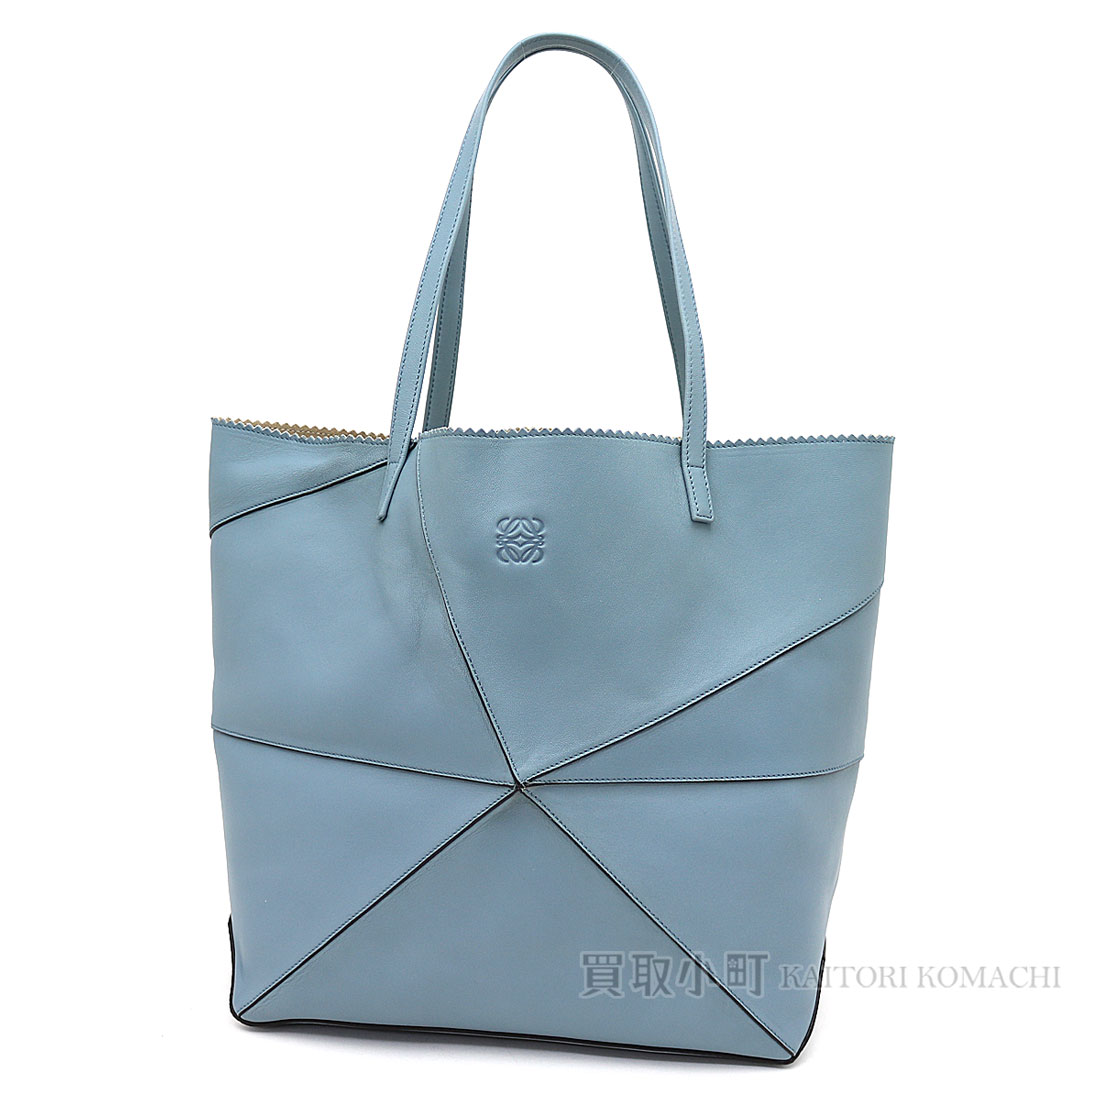 Loewe Origami Tote Bag Light Blue Sheepskin Shoulder Bag Shopping Bag Logogriph Emboss 39982 G98 Origami Tote Bag